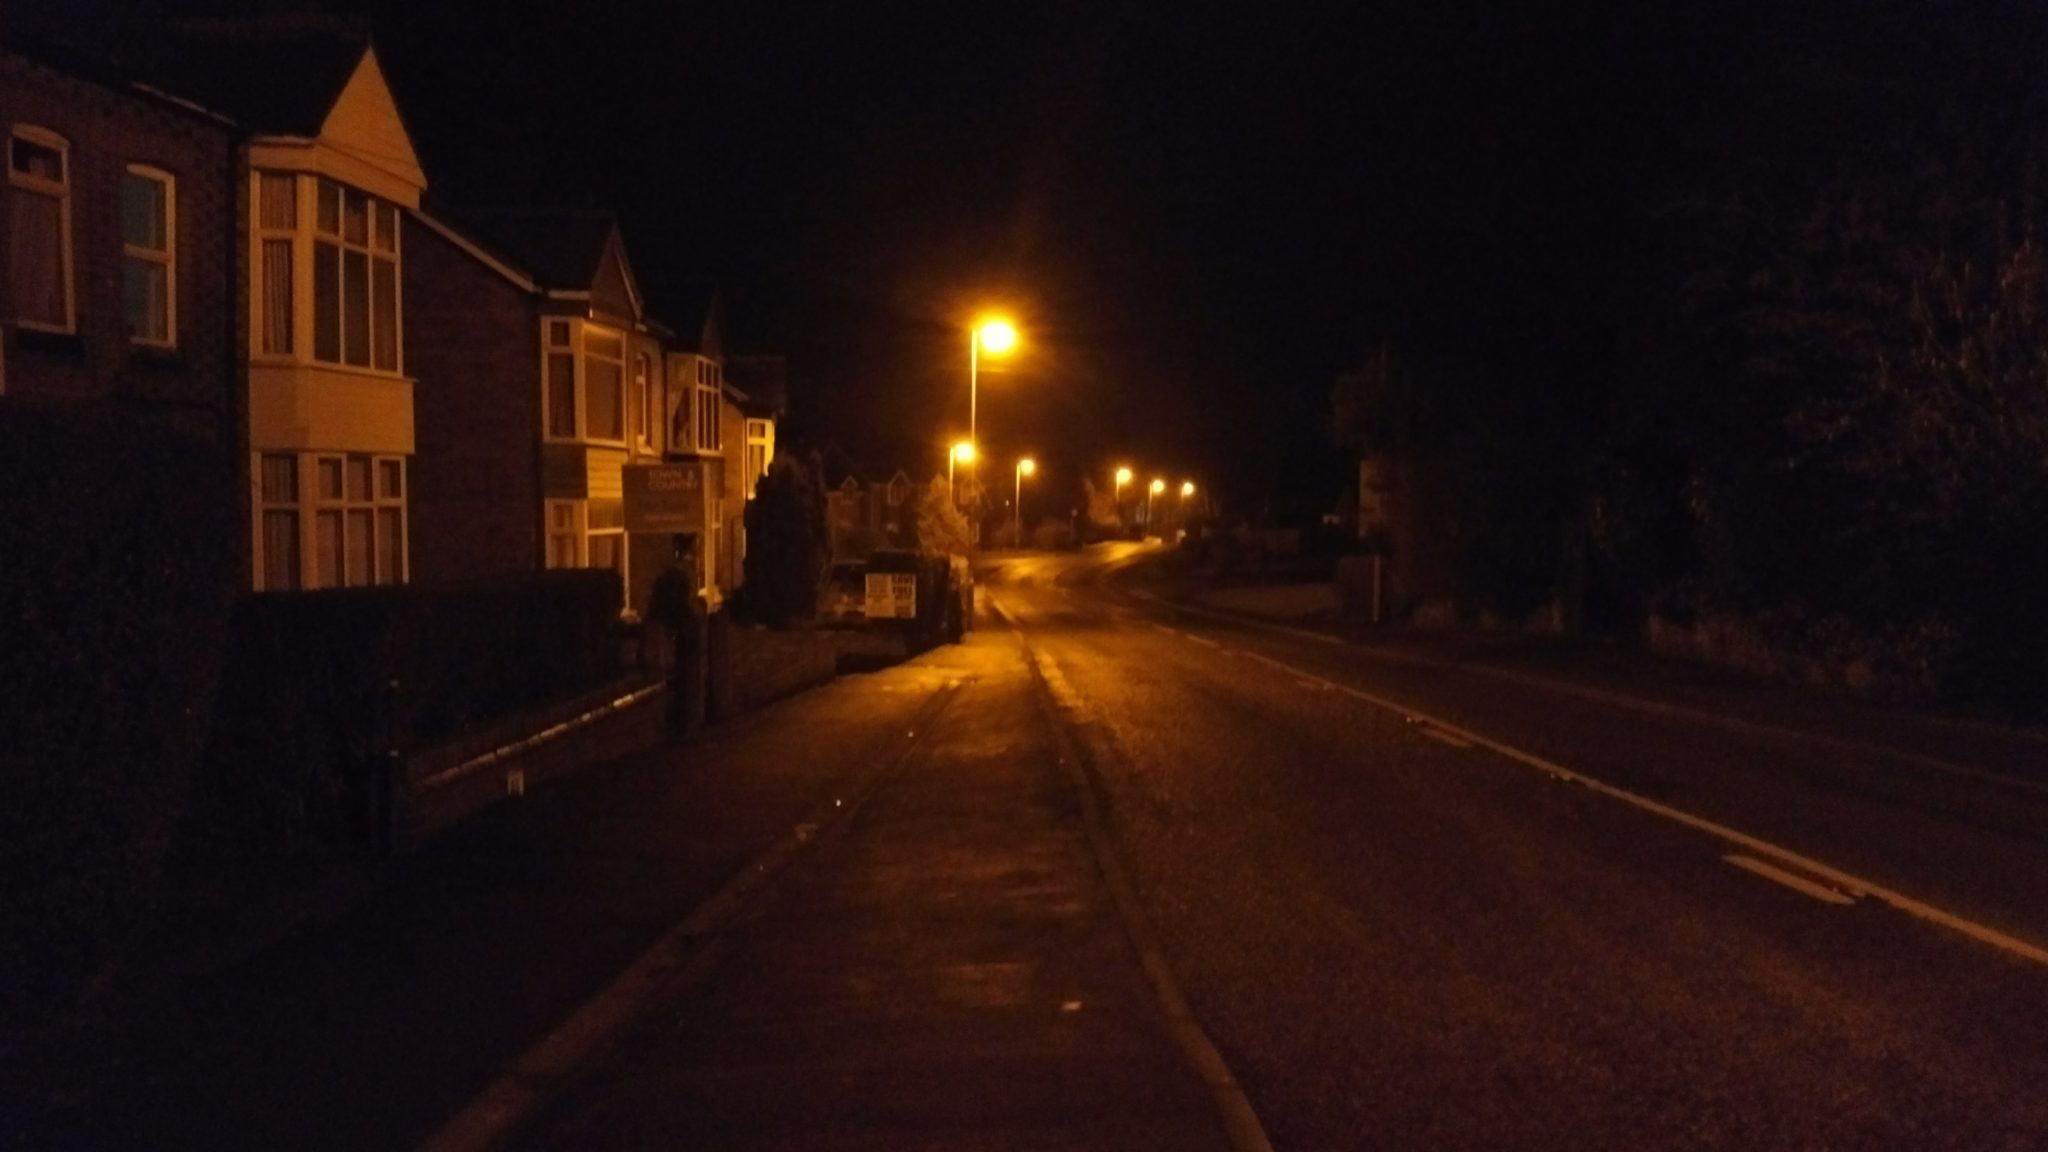 LED Street Lights in West Felton [updated] [updated] [updated]